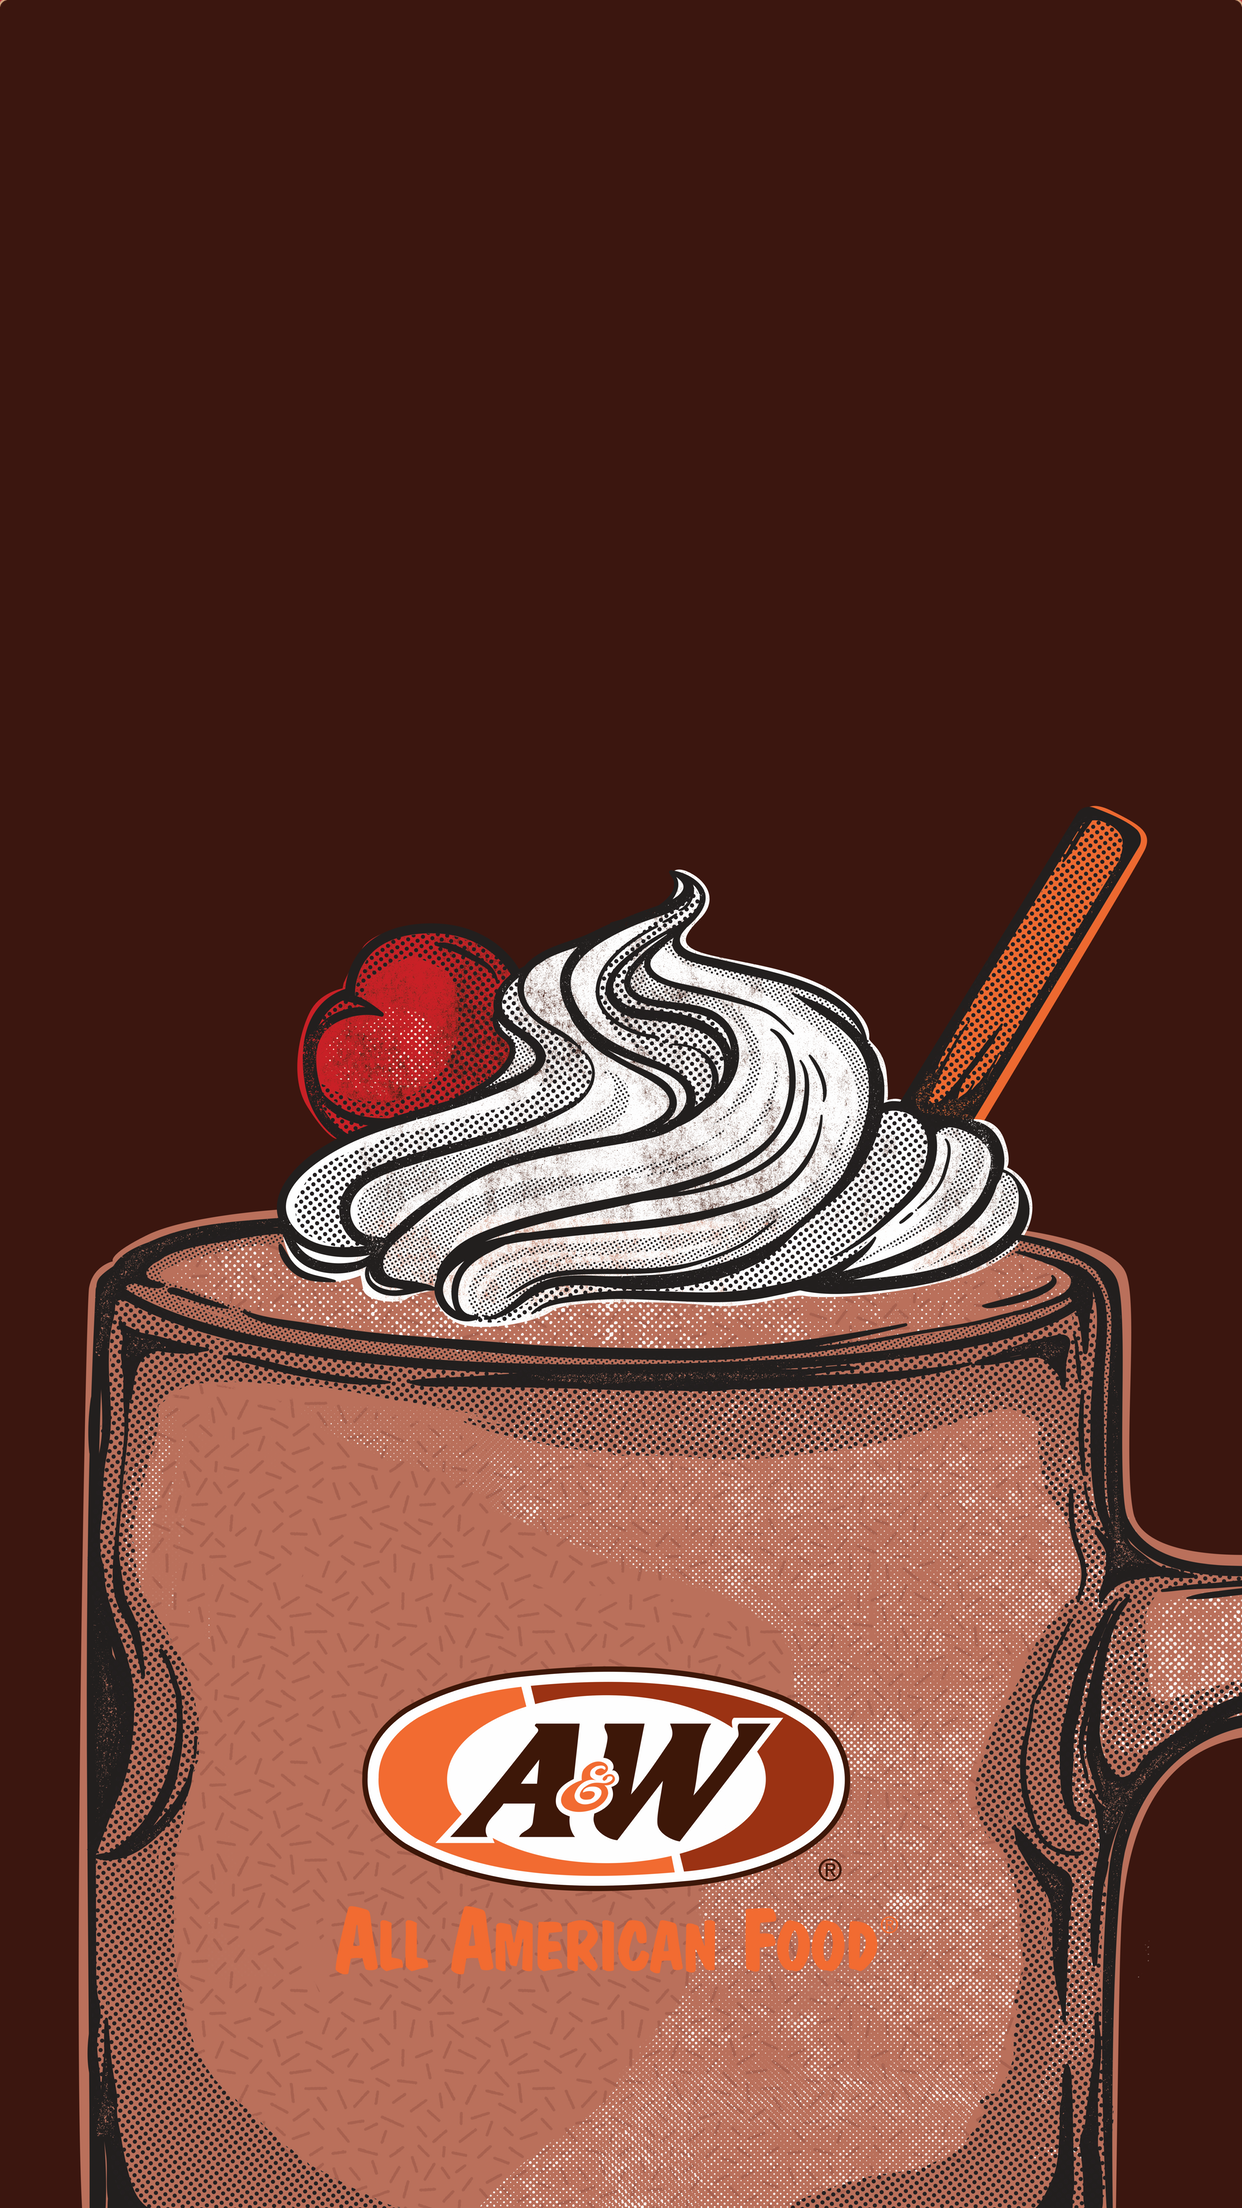 Chocolate shake on brown background